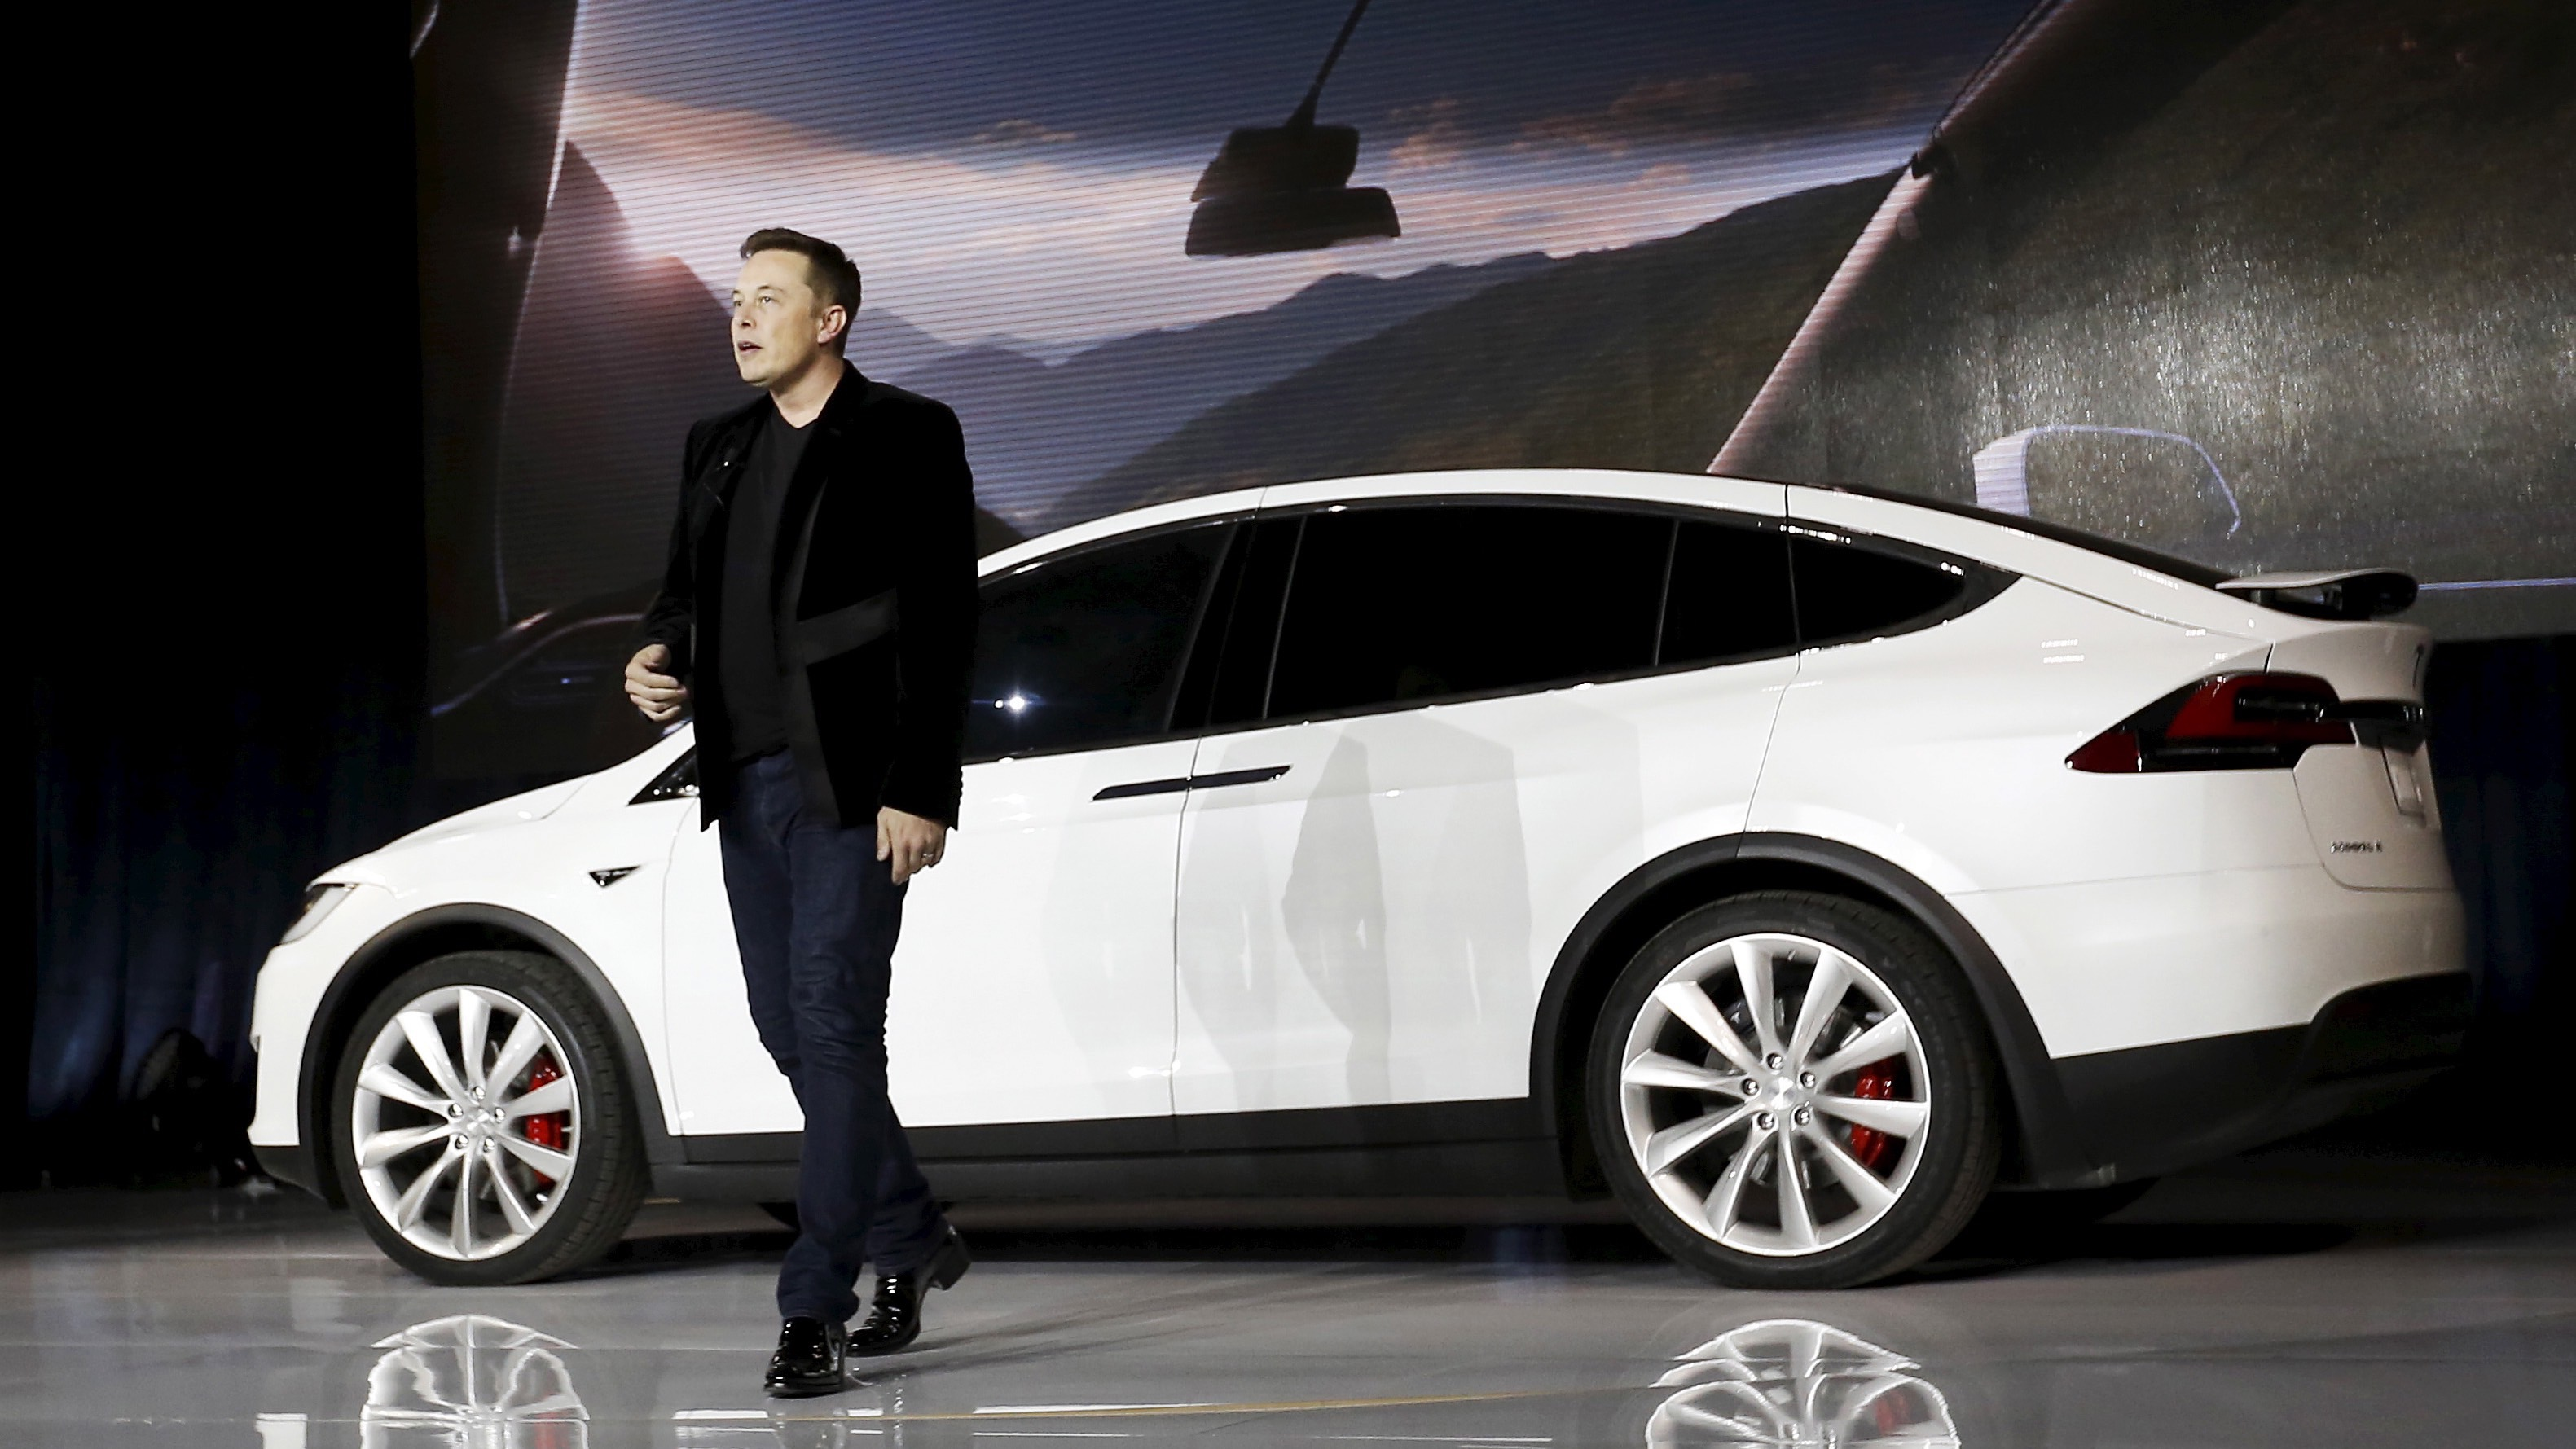 Elon musk says tesla electric cars could arrive in india this summer elon musk says tesla electric cars could arrive in india this summer quartz india malvernweather Image collections